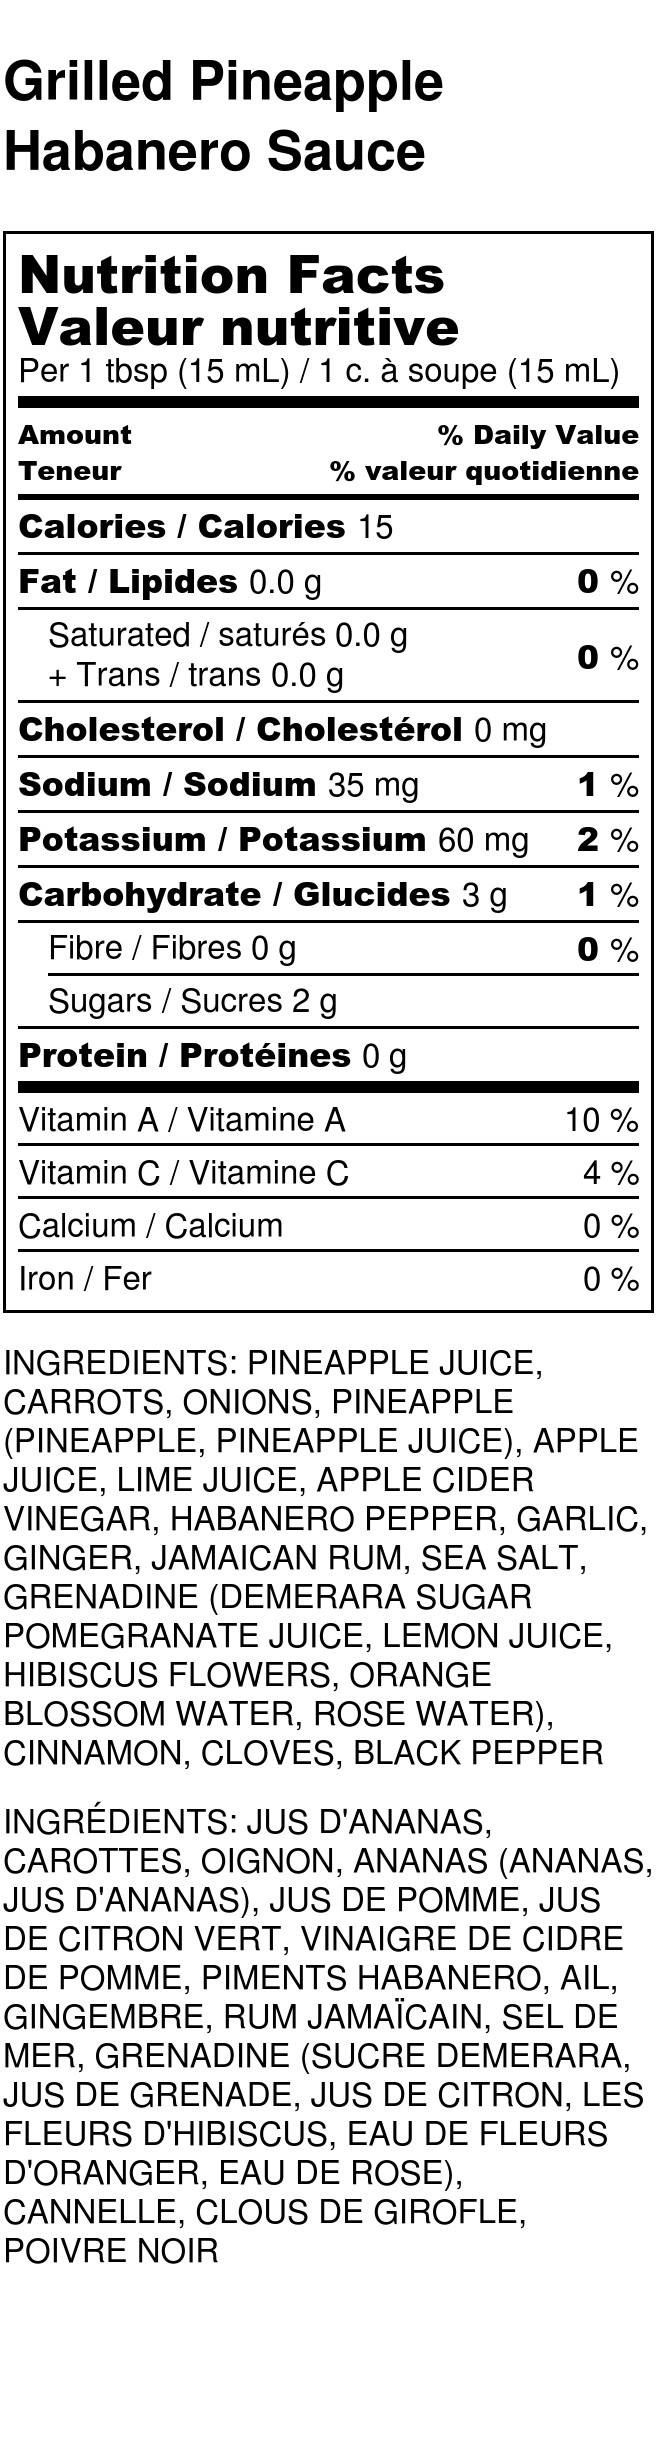 Grilled Pineapple Habanero Sauce - Nutrition Label.jpg